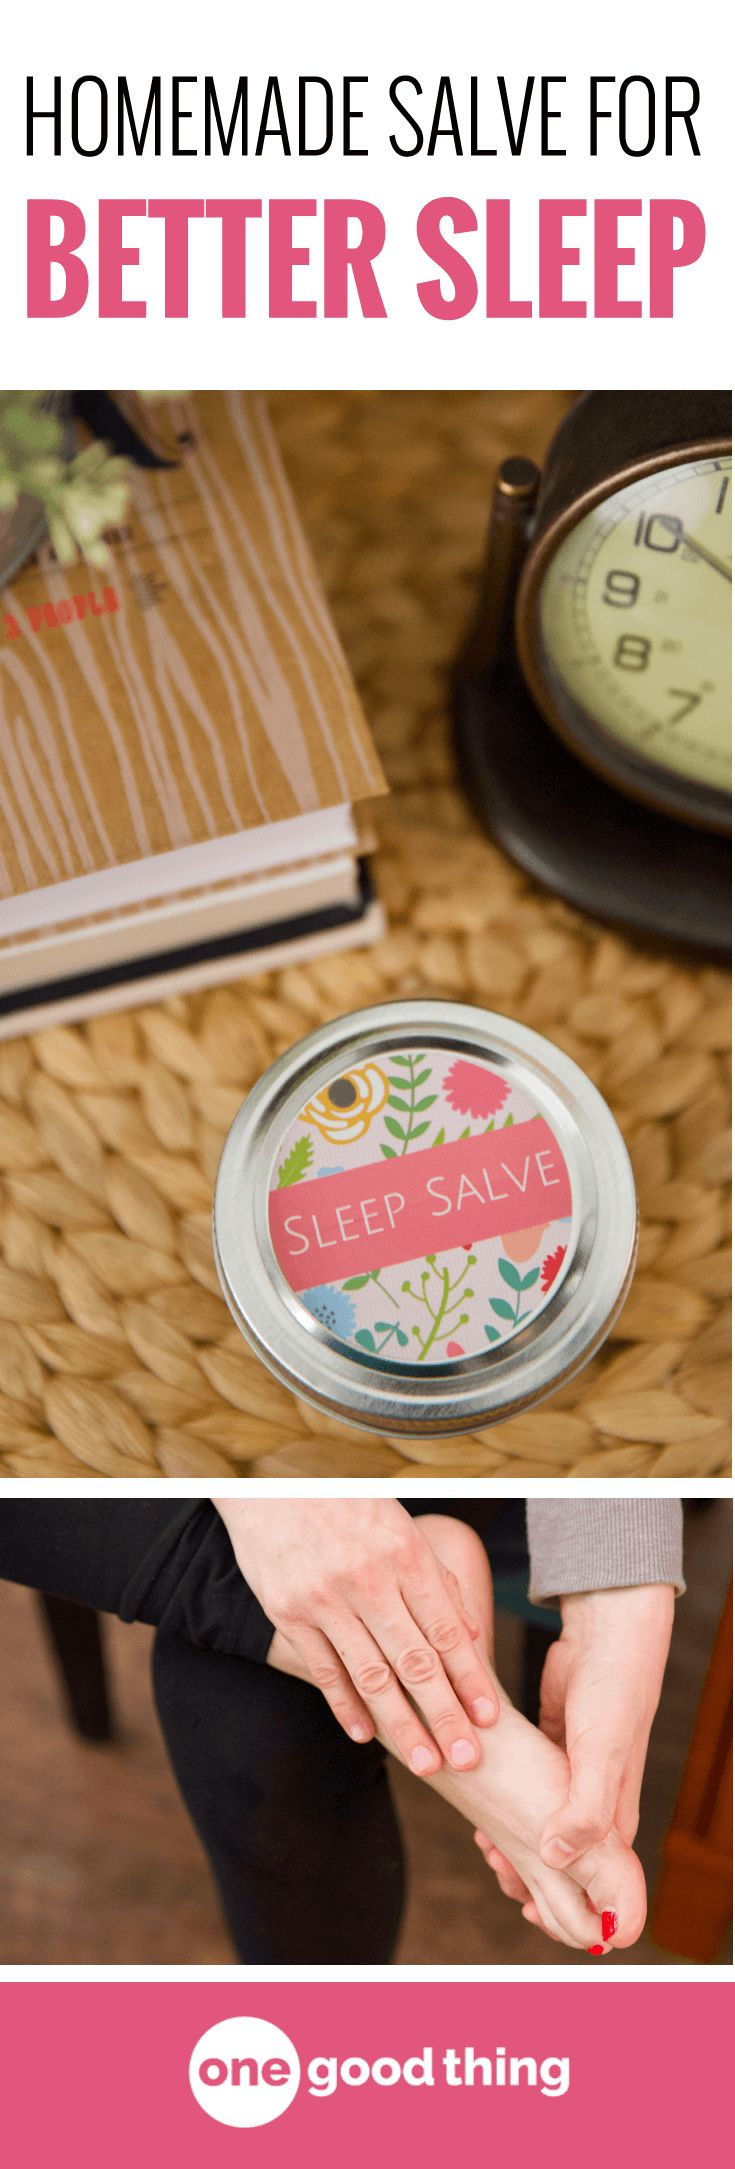 Learn how to make an all-natural Sleep Salve that will help you fall asleep and stay asleep. It's easy to make and apply, and it can also help soften dry, cracked feet! Smoother feet and better sleep? Sign me up! #naturalremedies #homeremedies #sleepremedies